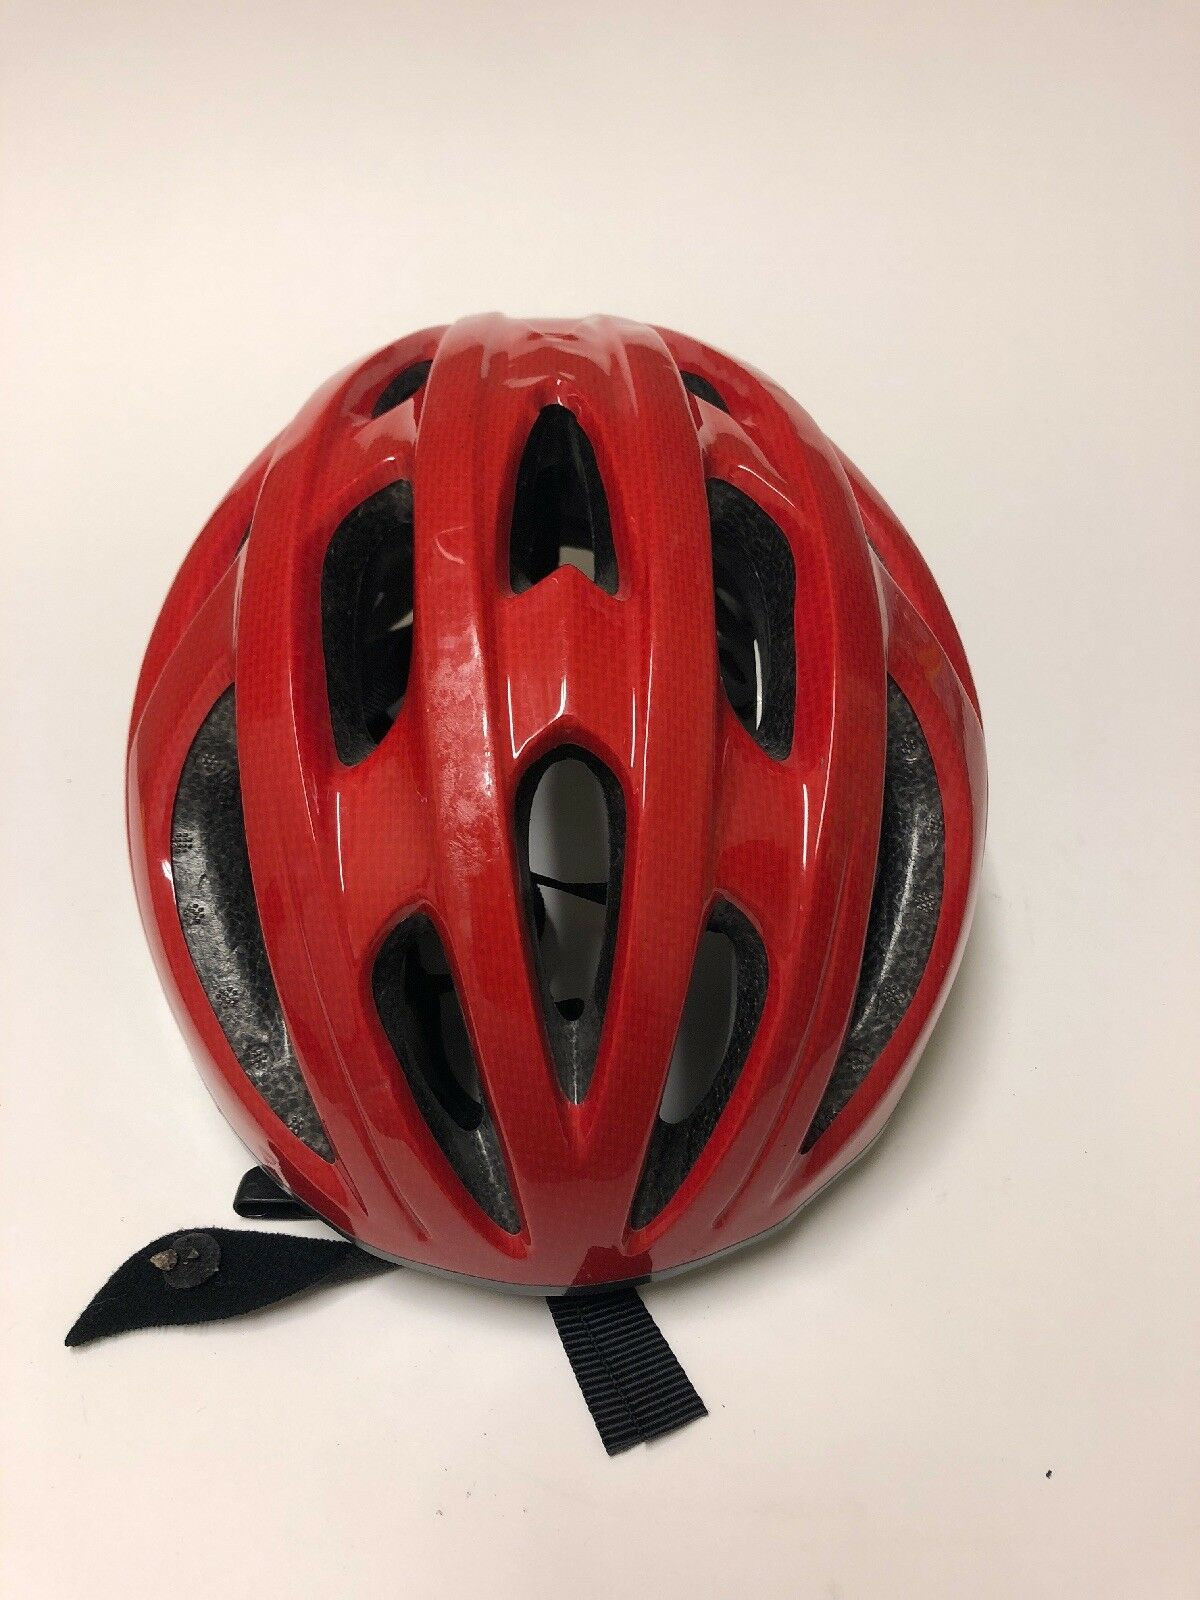 Giro Transit Cycling Helmet for Adult Universal Fit  54-61cm - Red  guaranteed